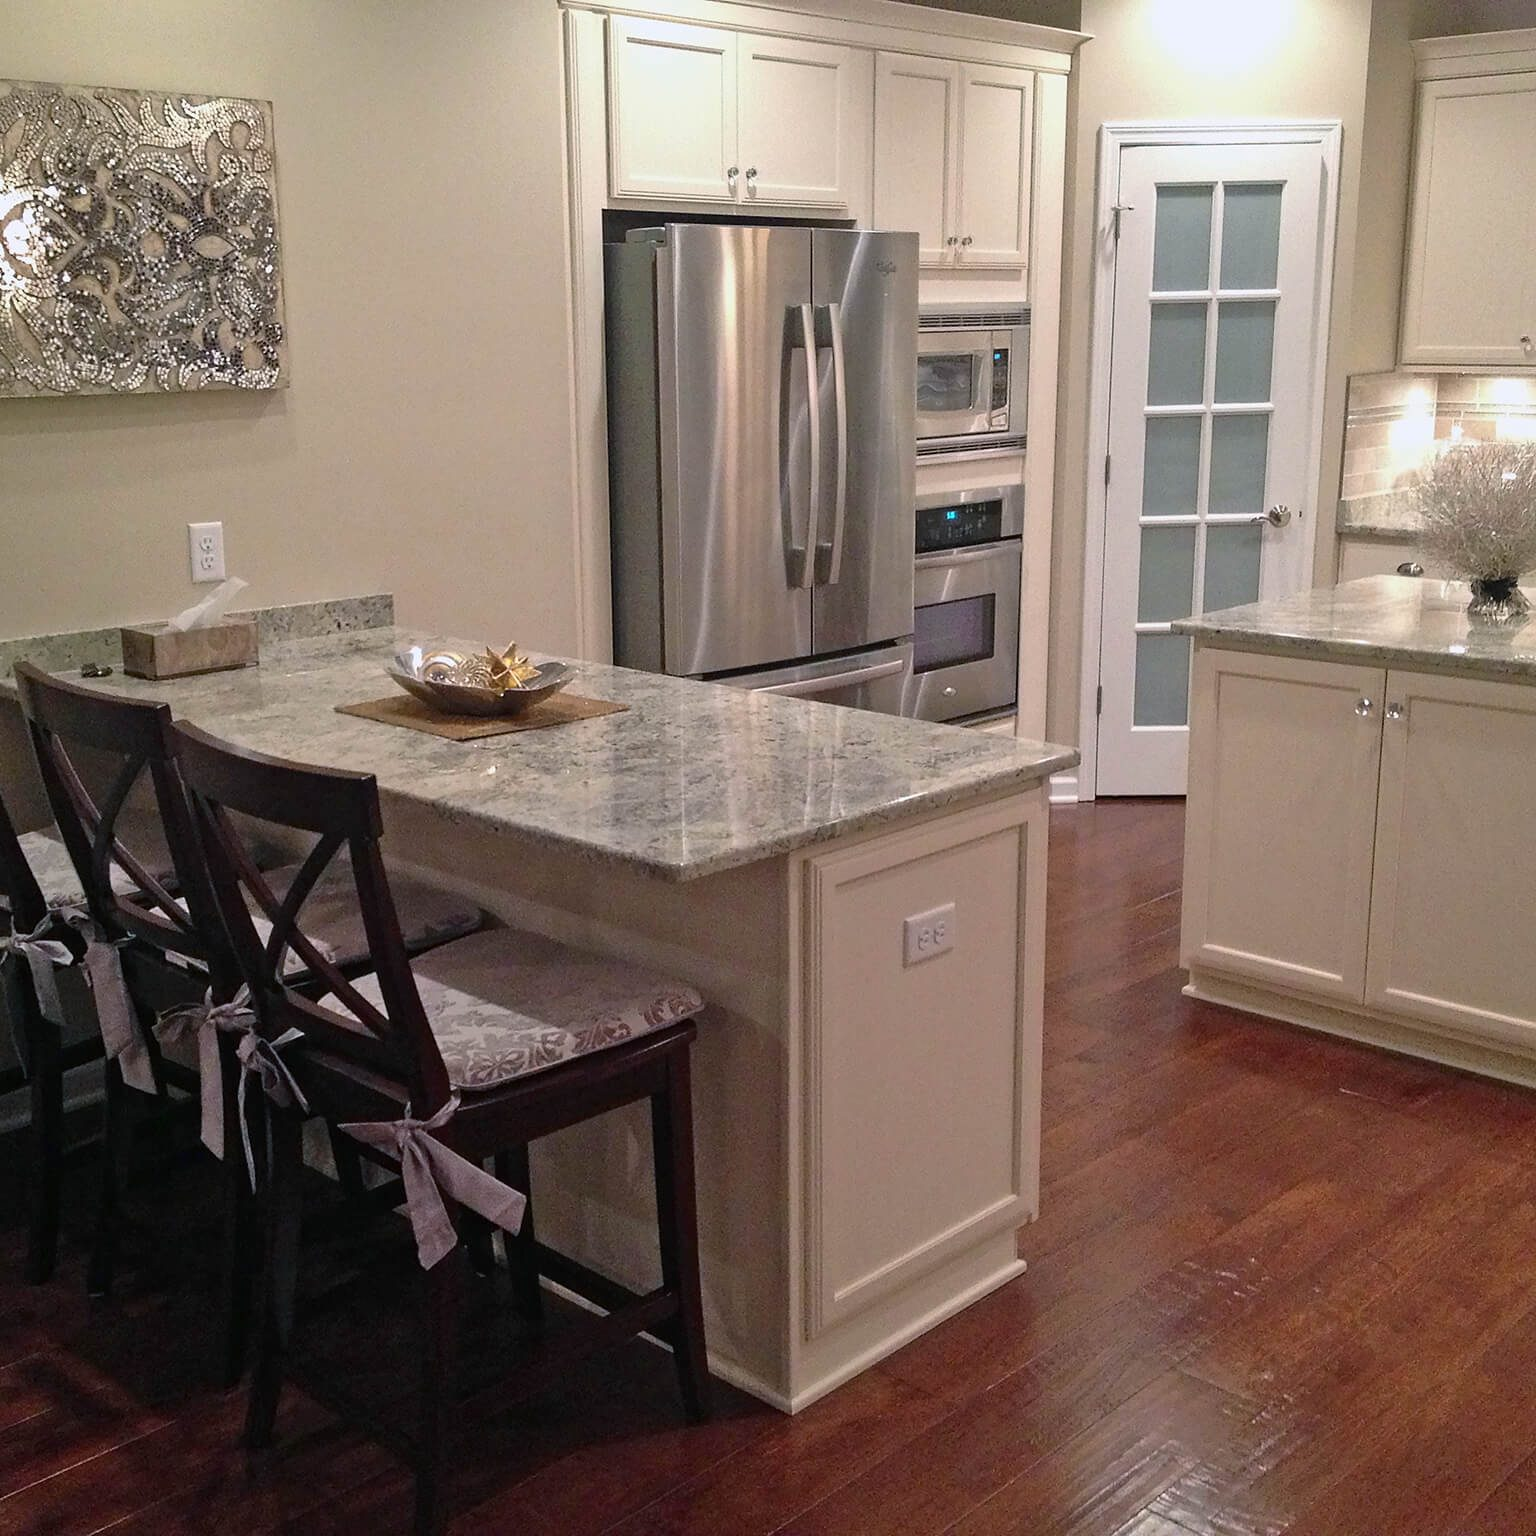 Kinetic Kitchen and Bath Gallery Photo - Kitchen remodel design 14